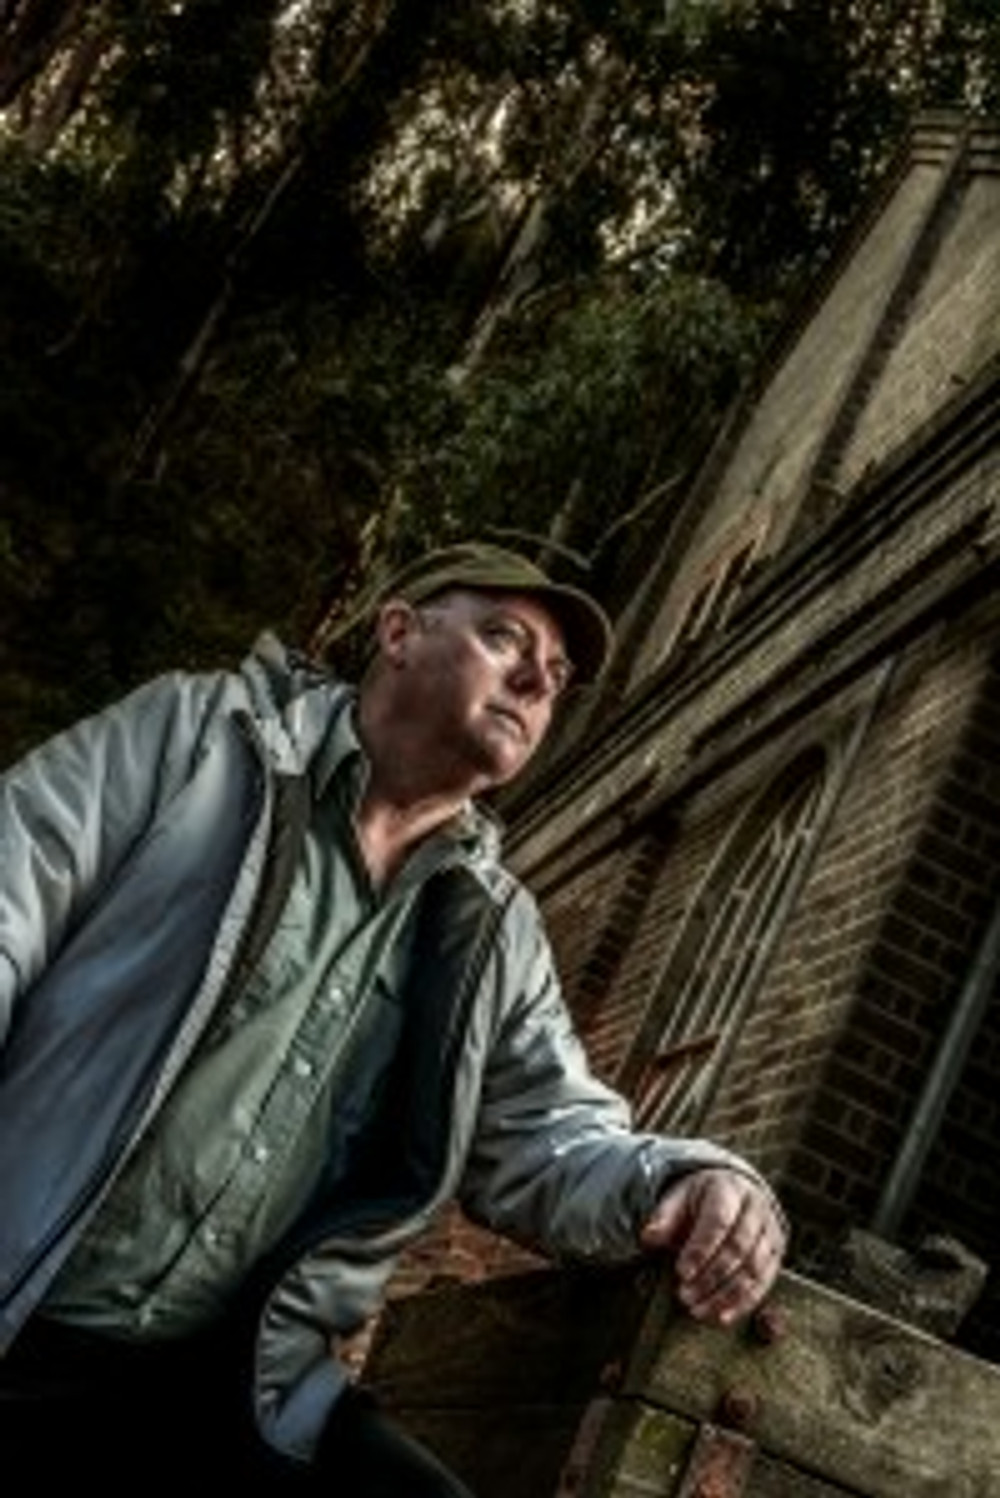 Ghost tours take in many sites around the Blue Mountains and Lithgow areas